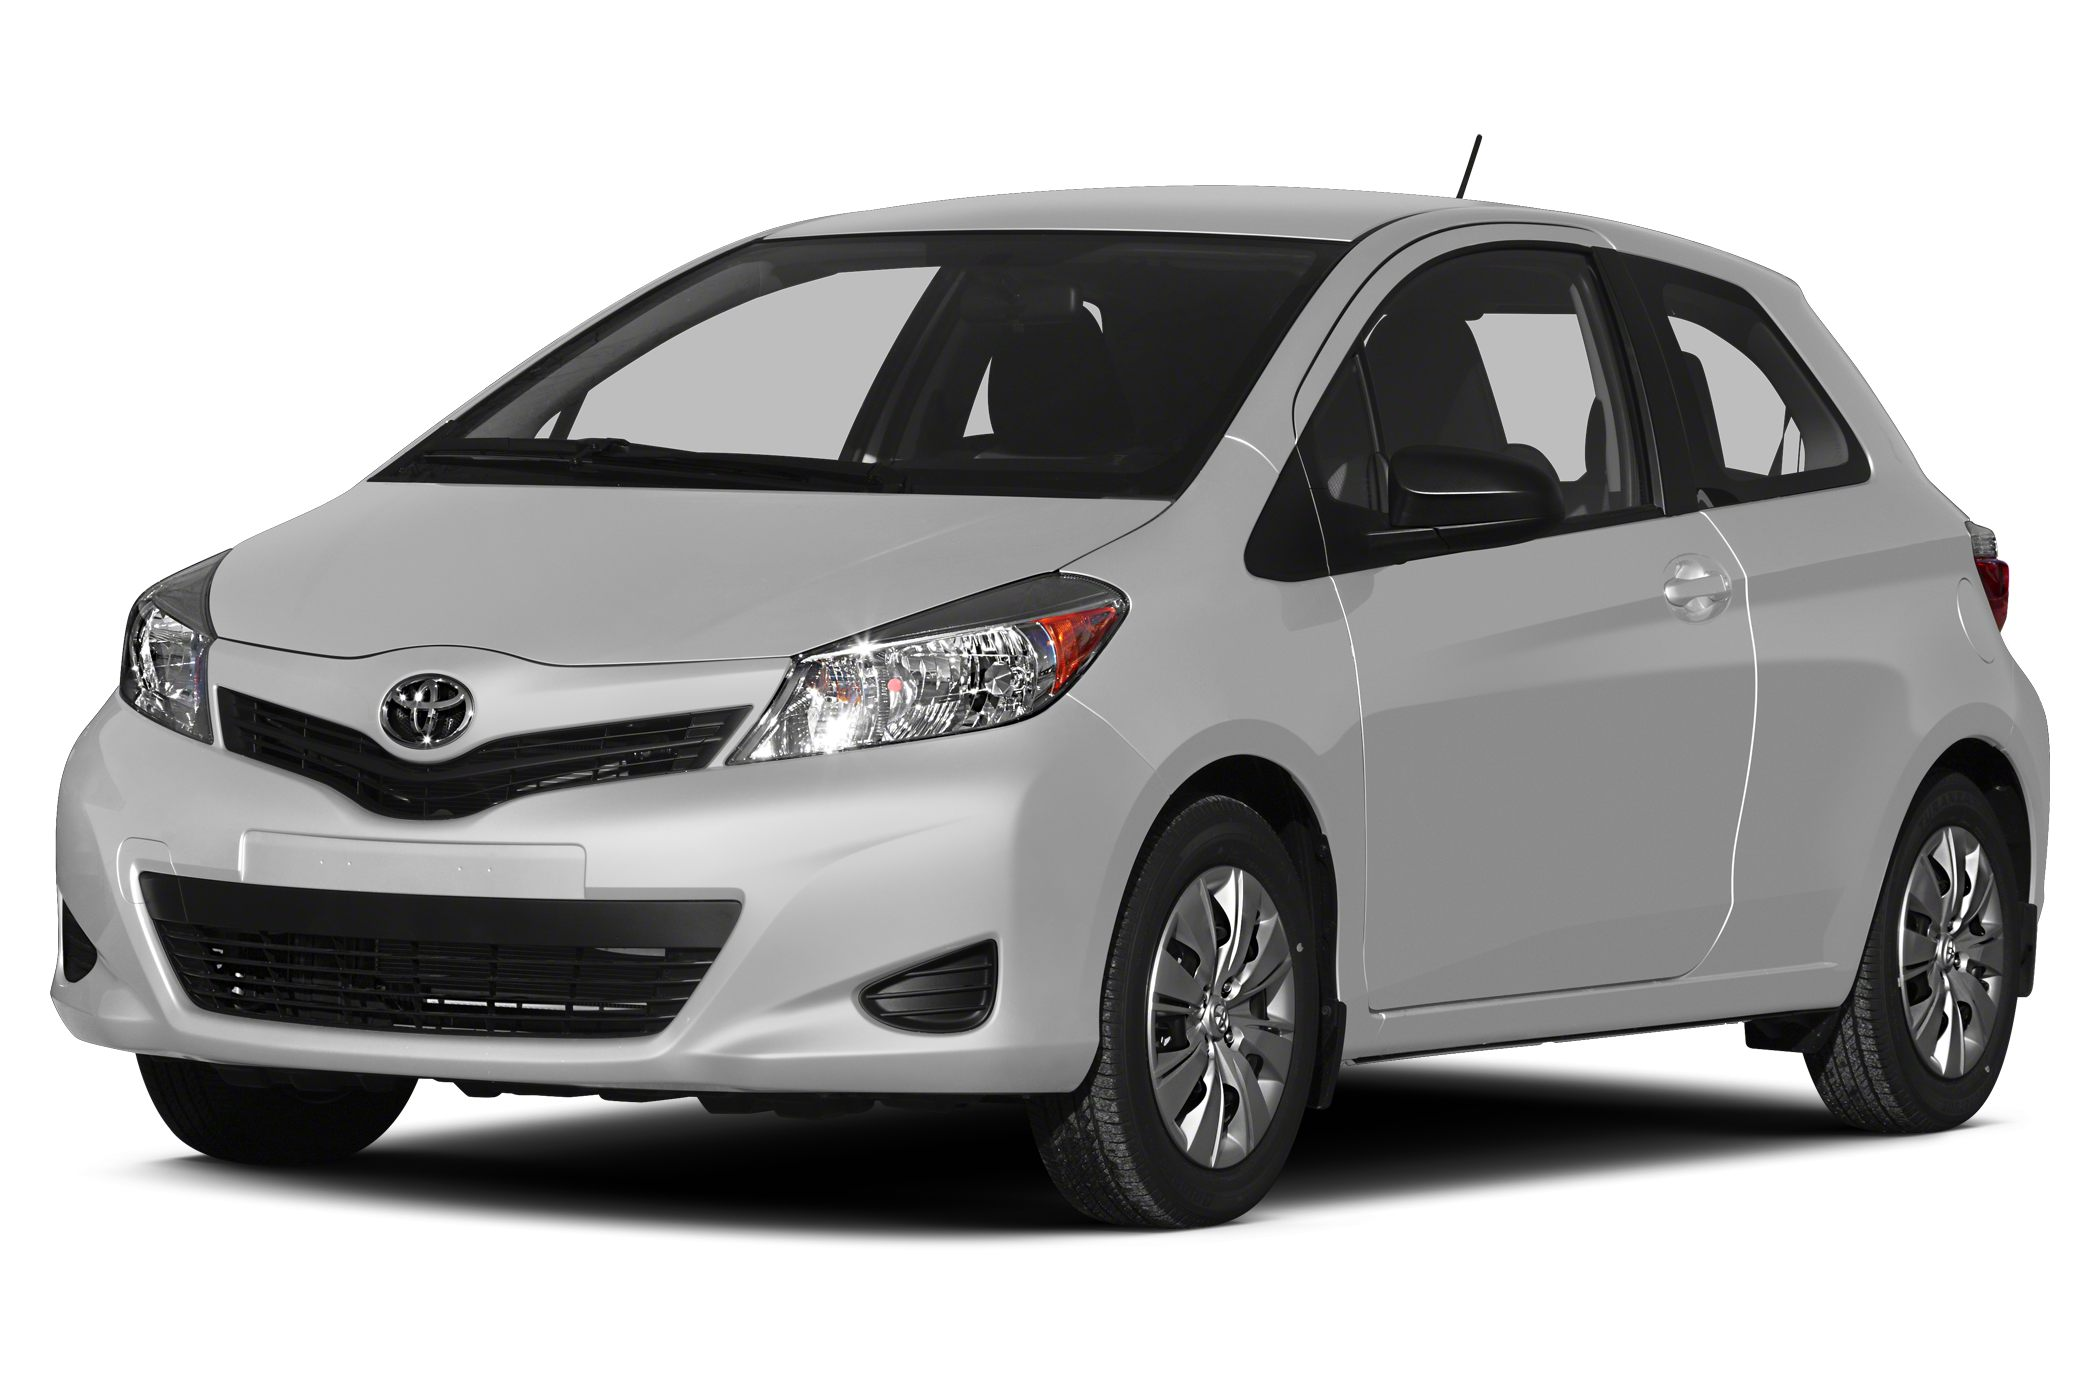 2013 Toyota Yaris LE Hatchback for sale in Fort Smith for $11,595 with 38,764 miles